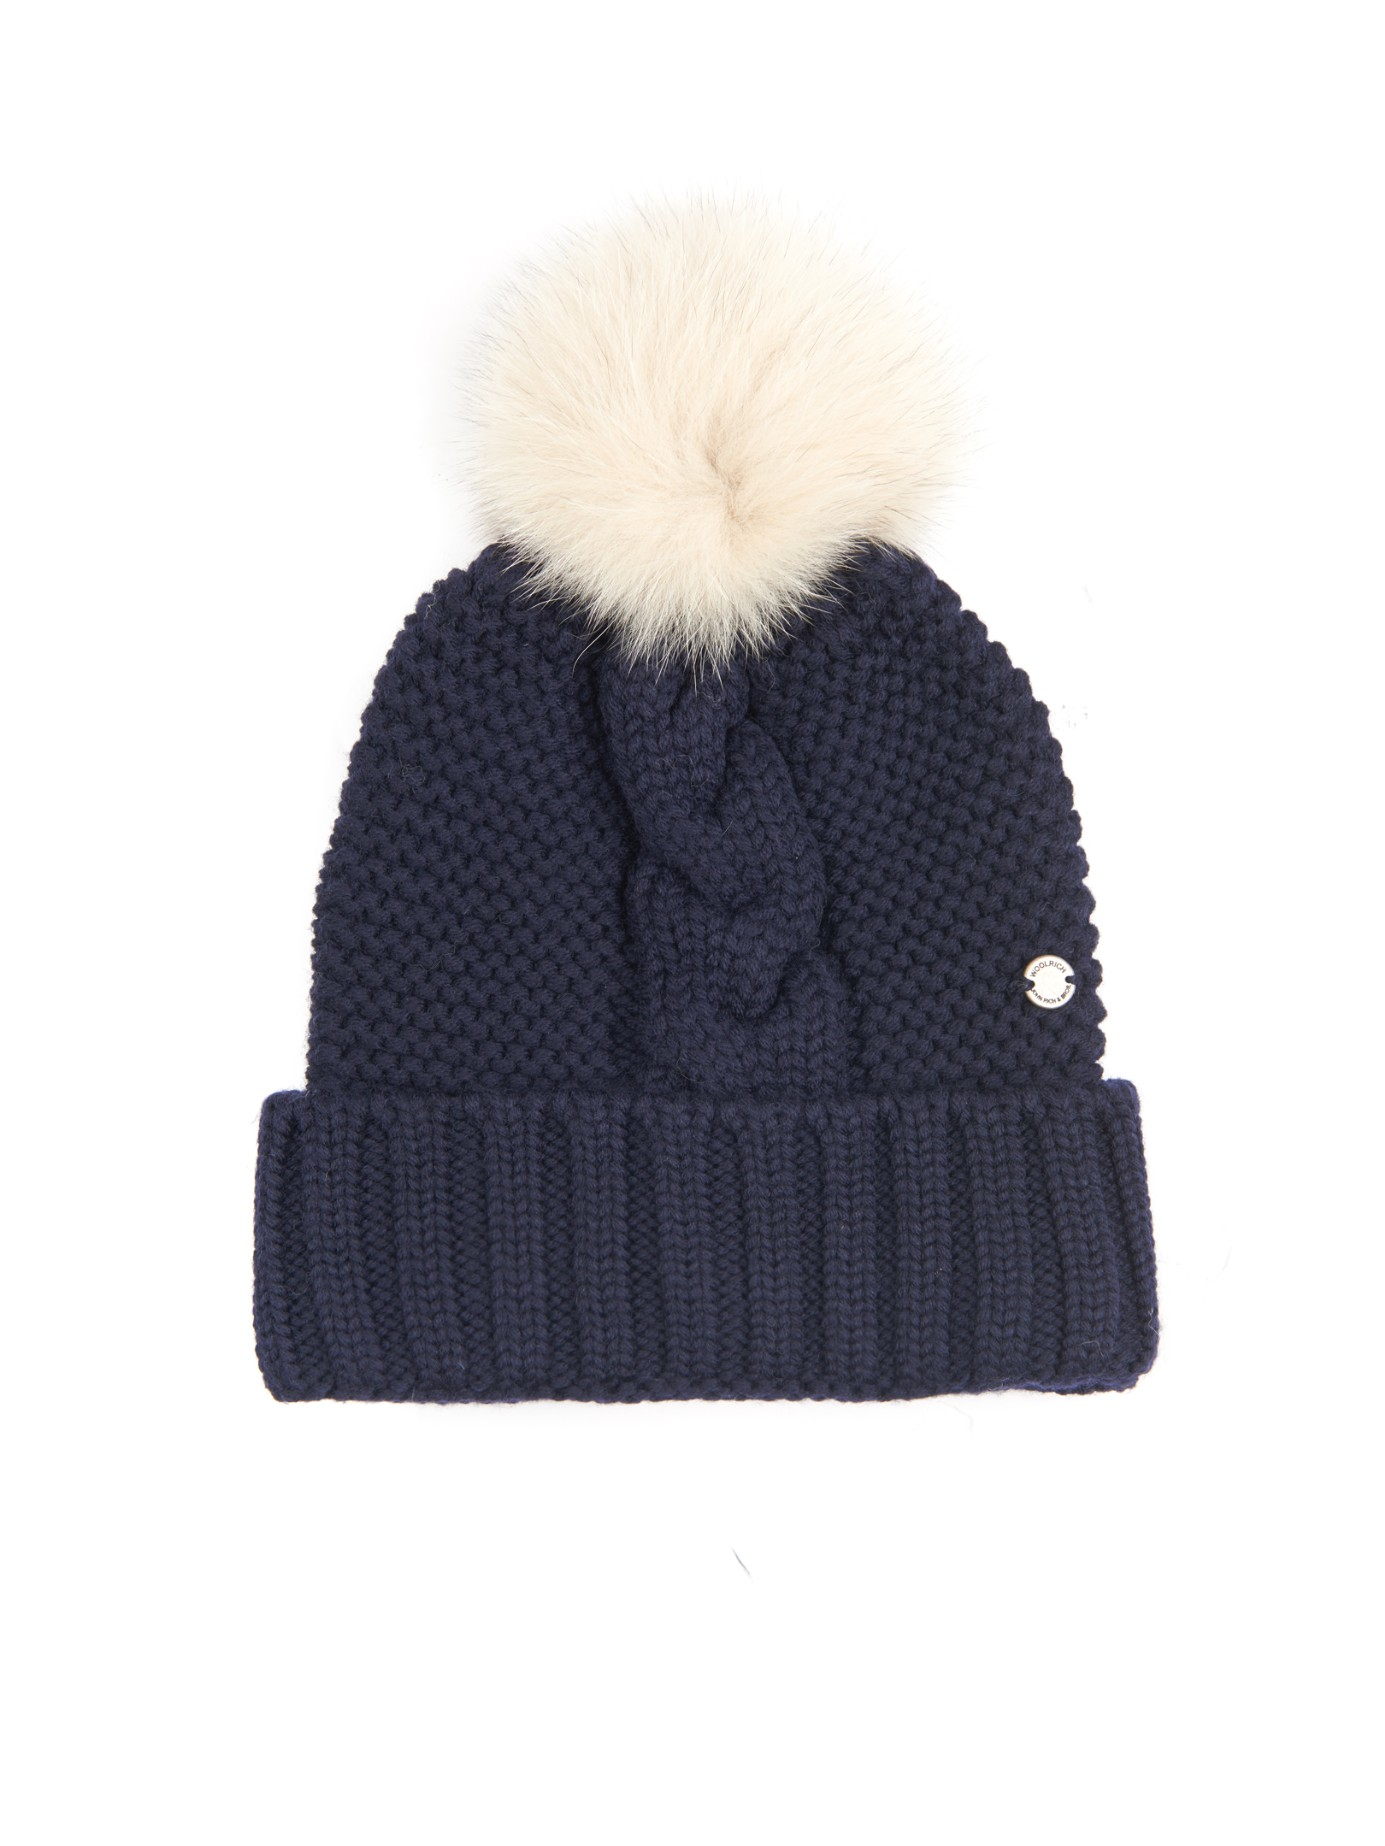 Lyst - Woolrich Serenity Cable-Knit Wool Beanie Hat in Blue c5ee068633d